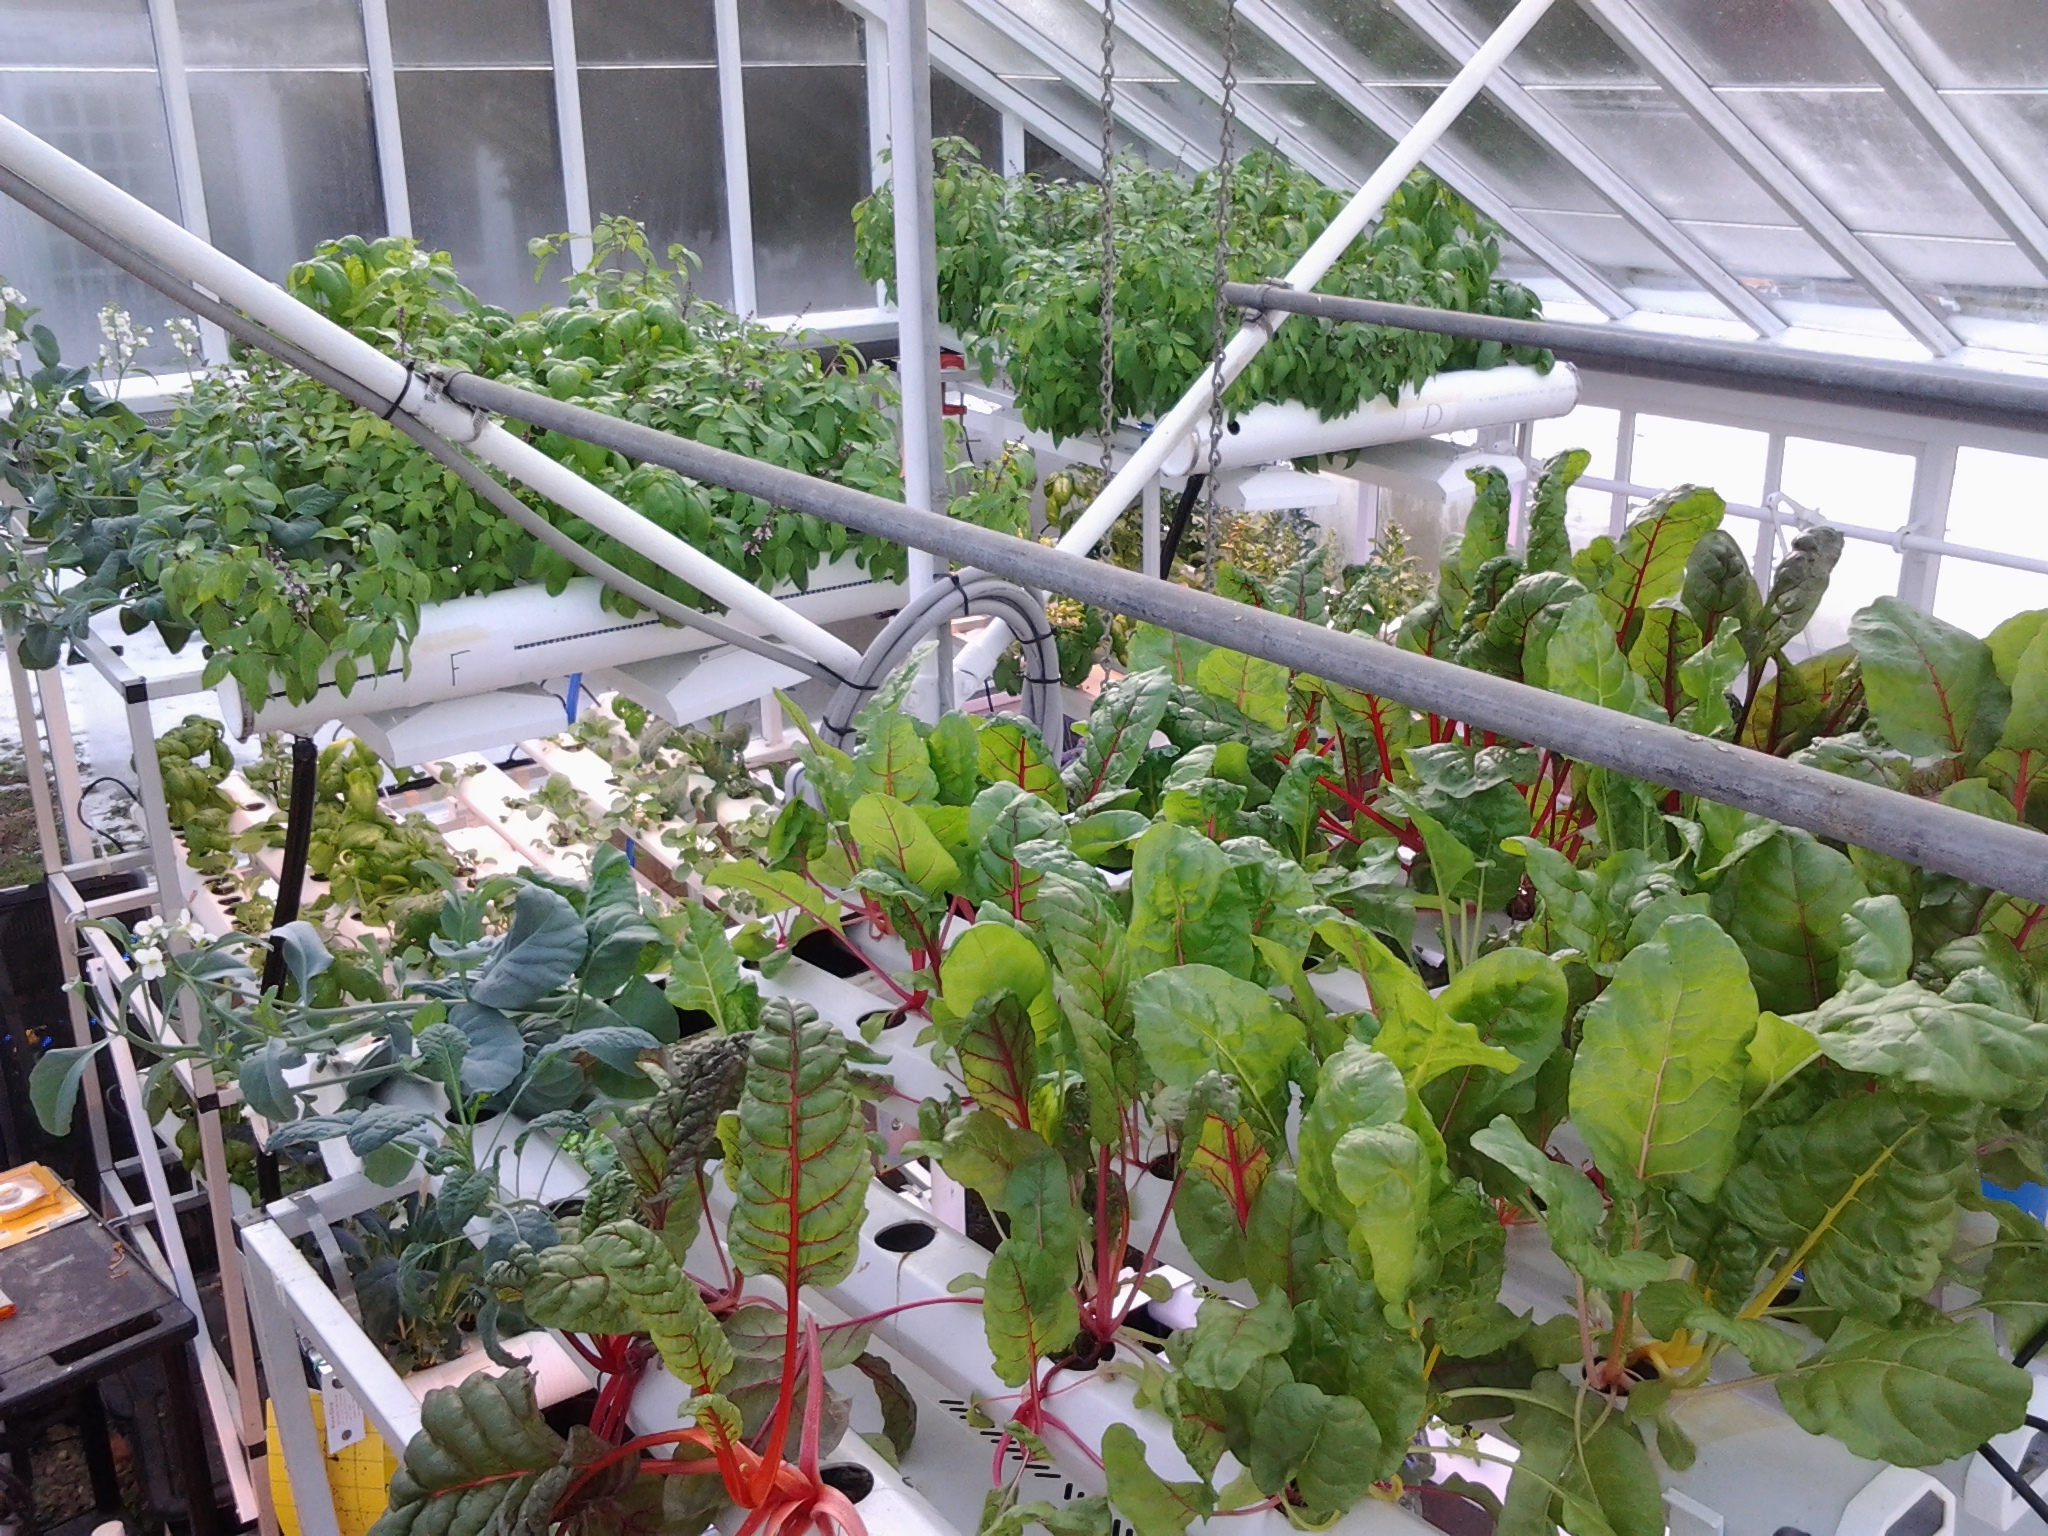 A hydroponic system used to grow leafy greens and herbs in the Boston College greenhouse.